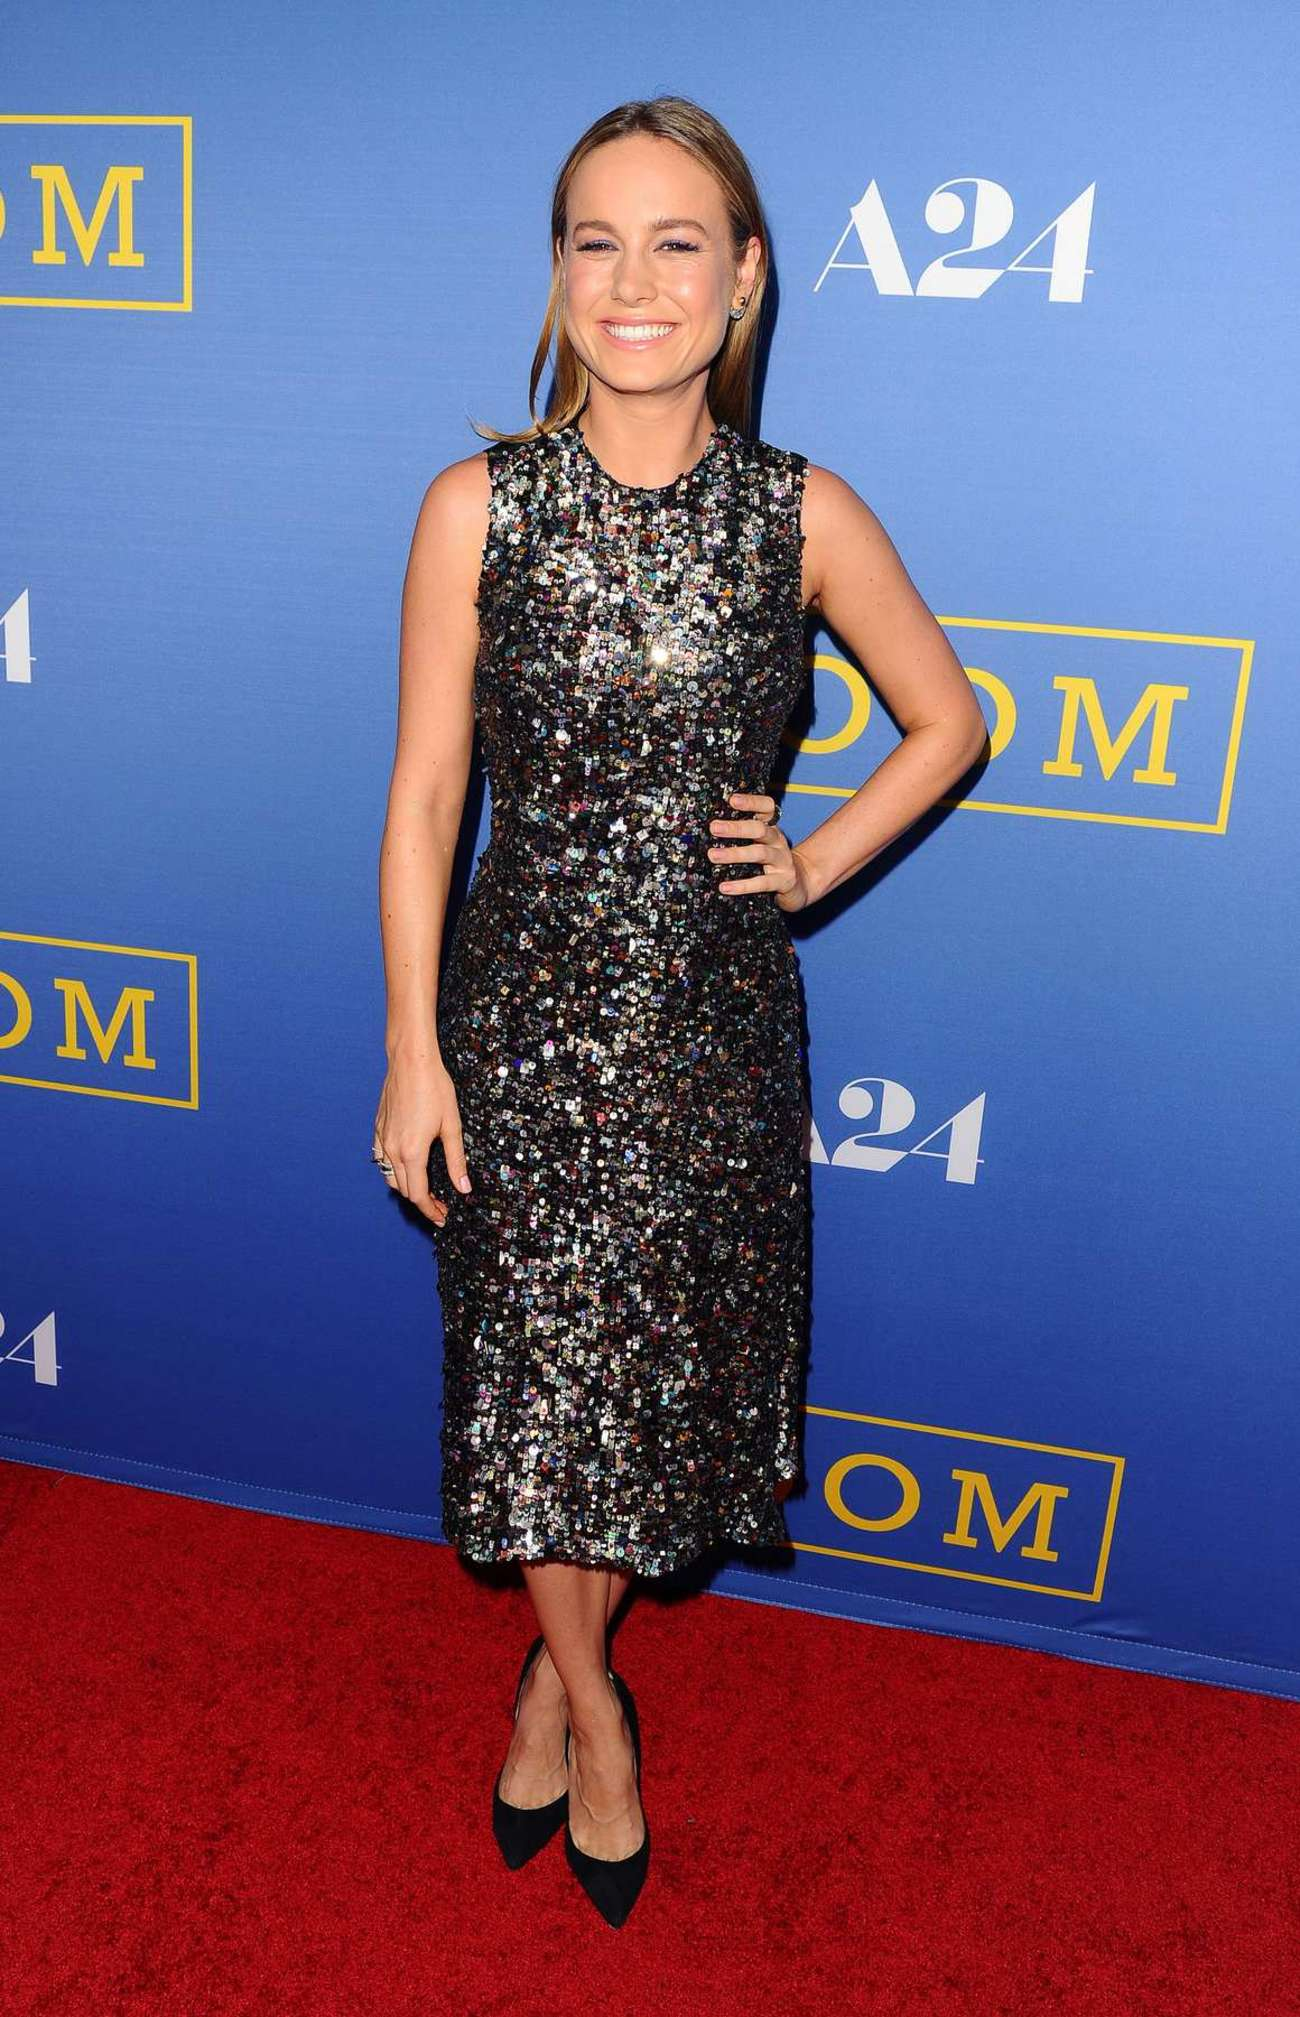 Brie Larson Room Premiere In Los Angeles Gotceleb